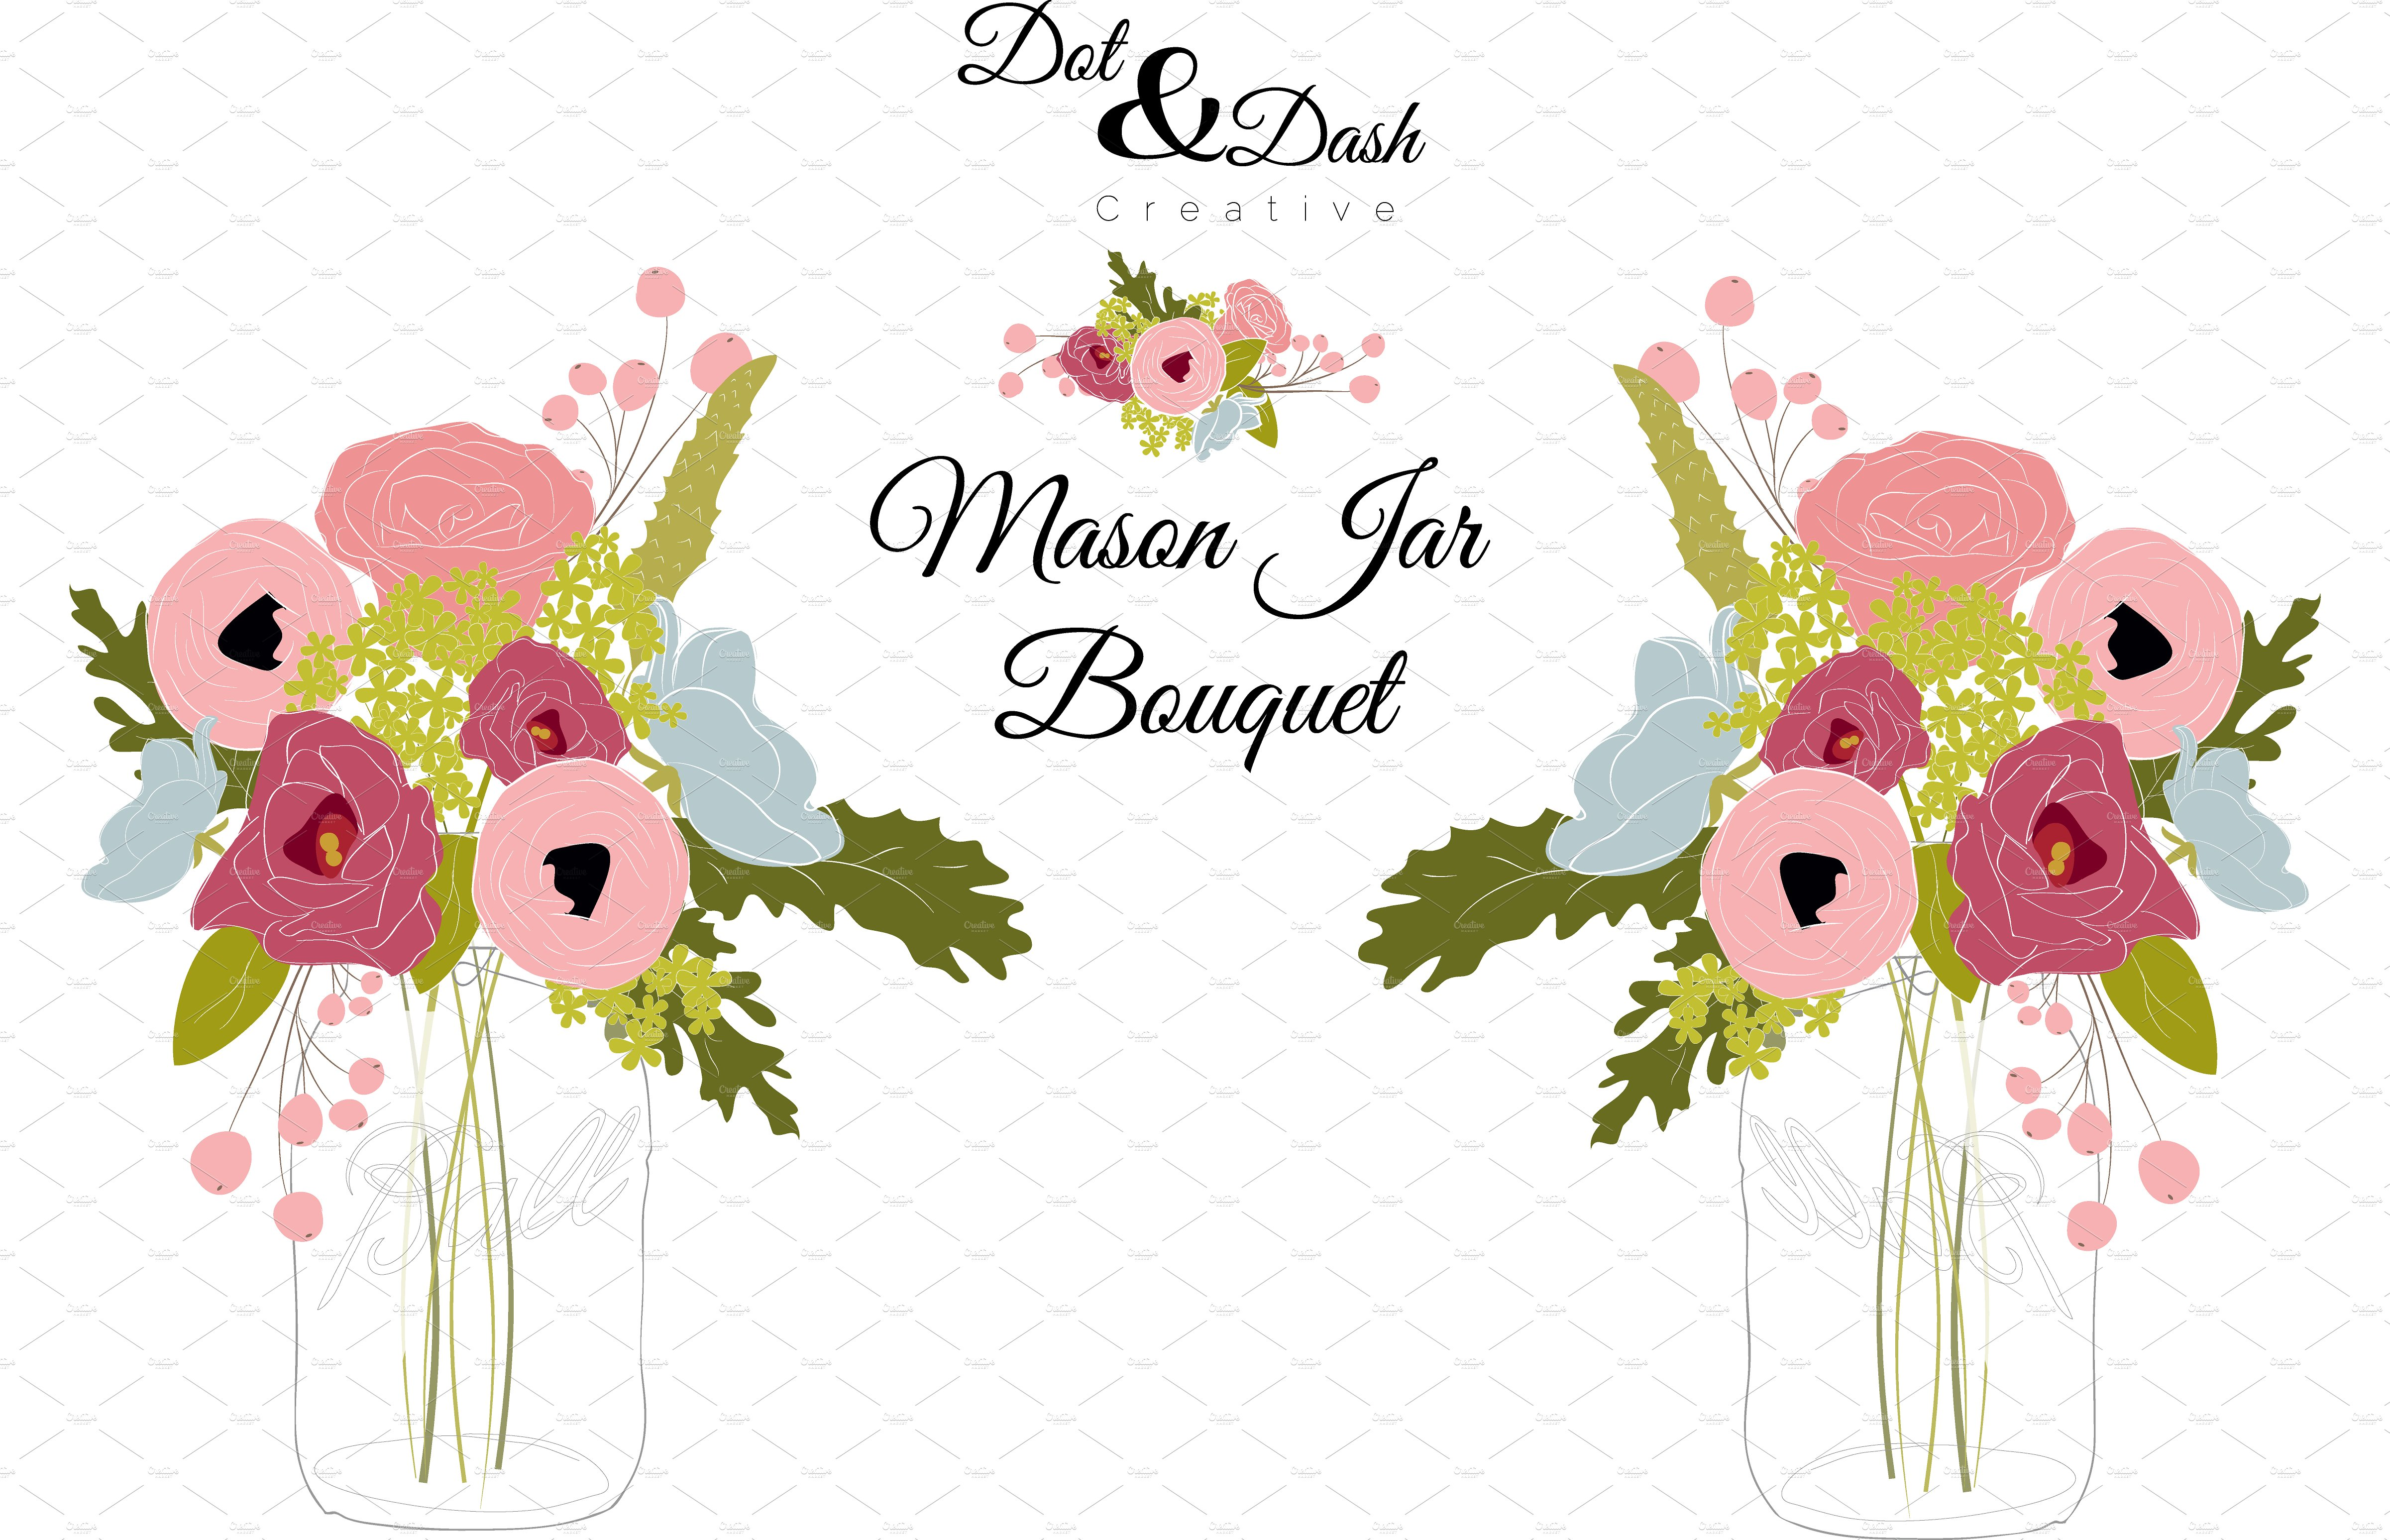 Bouquet clipart mason jar. Peony in vector graphics